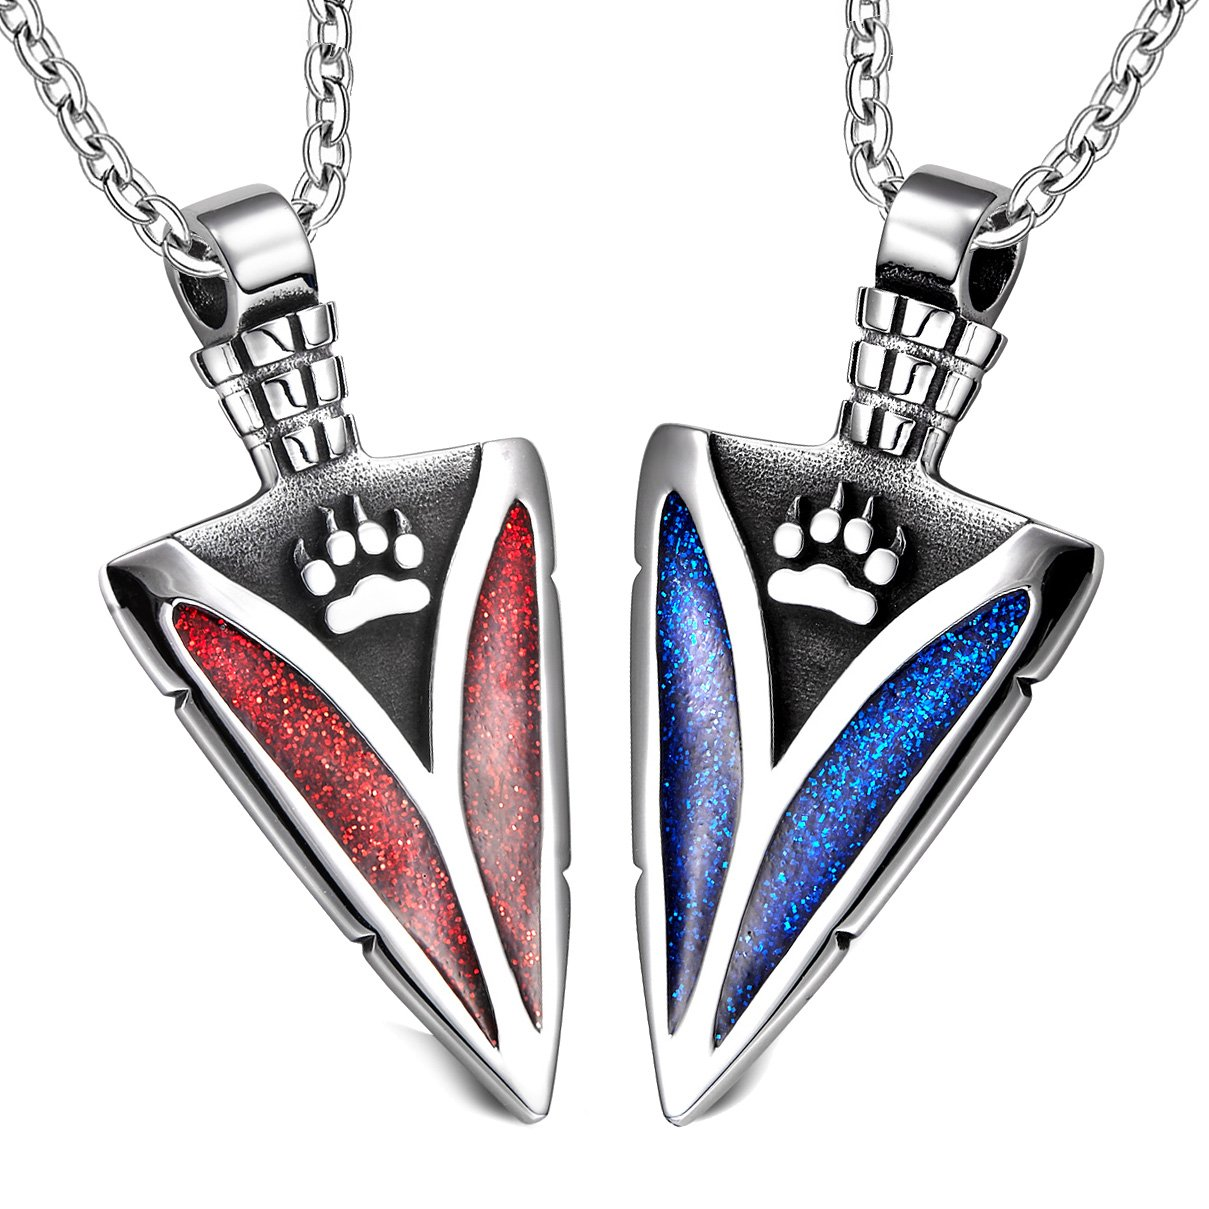 Arrowhead Wild Wolf Paw Love Couples or BFF Set Protection Amulets Sparkling Royal Blue Red Necklaces